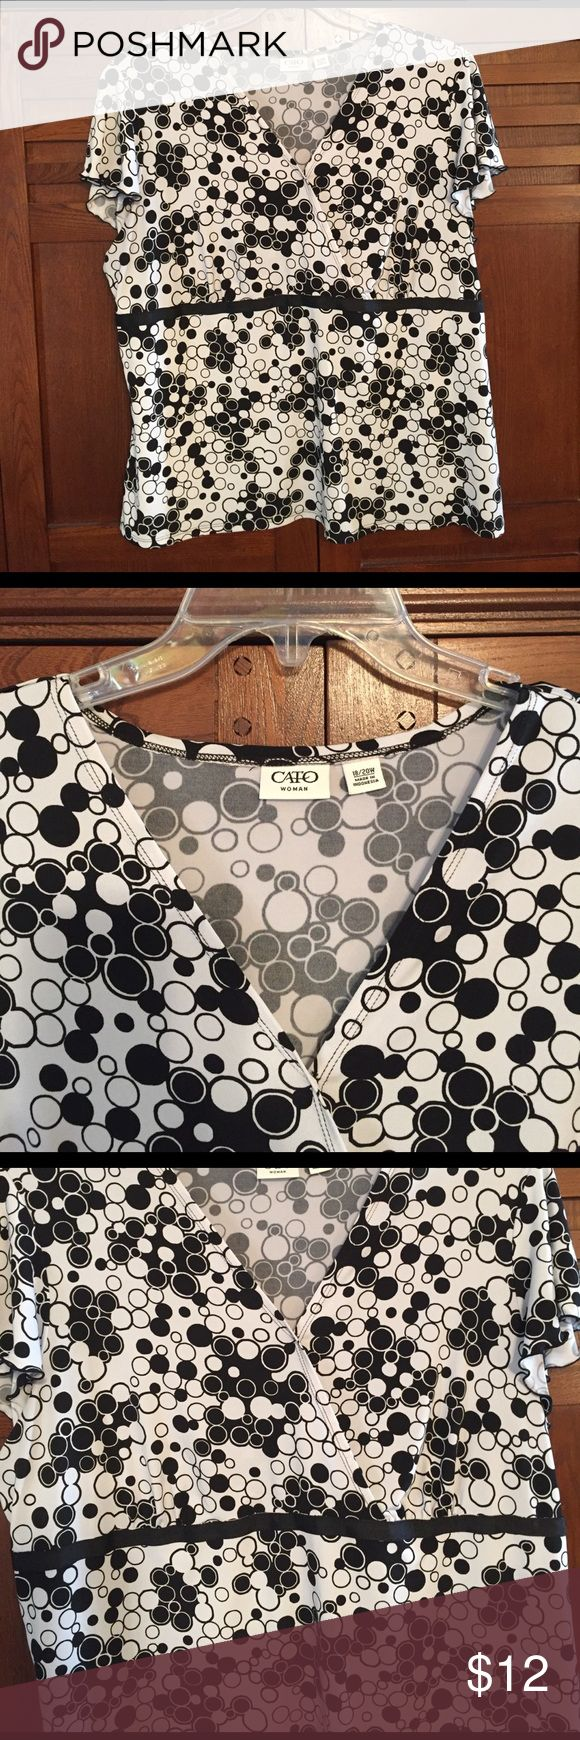 Black and white polka dot blouse Cato blouse. 18/20w black and white polka dot blouse. Short sleeves with a black ribbon band under wrap. Cato Tops Blouses